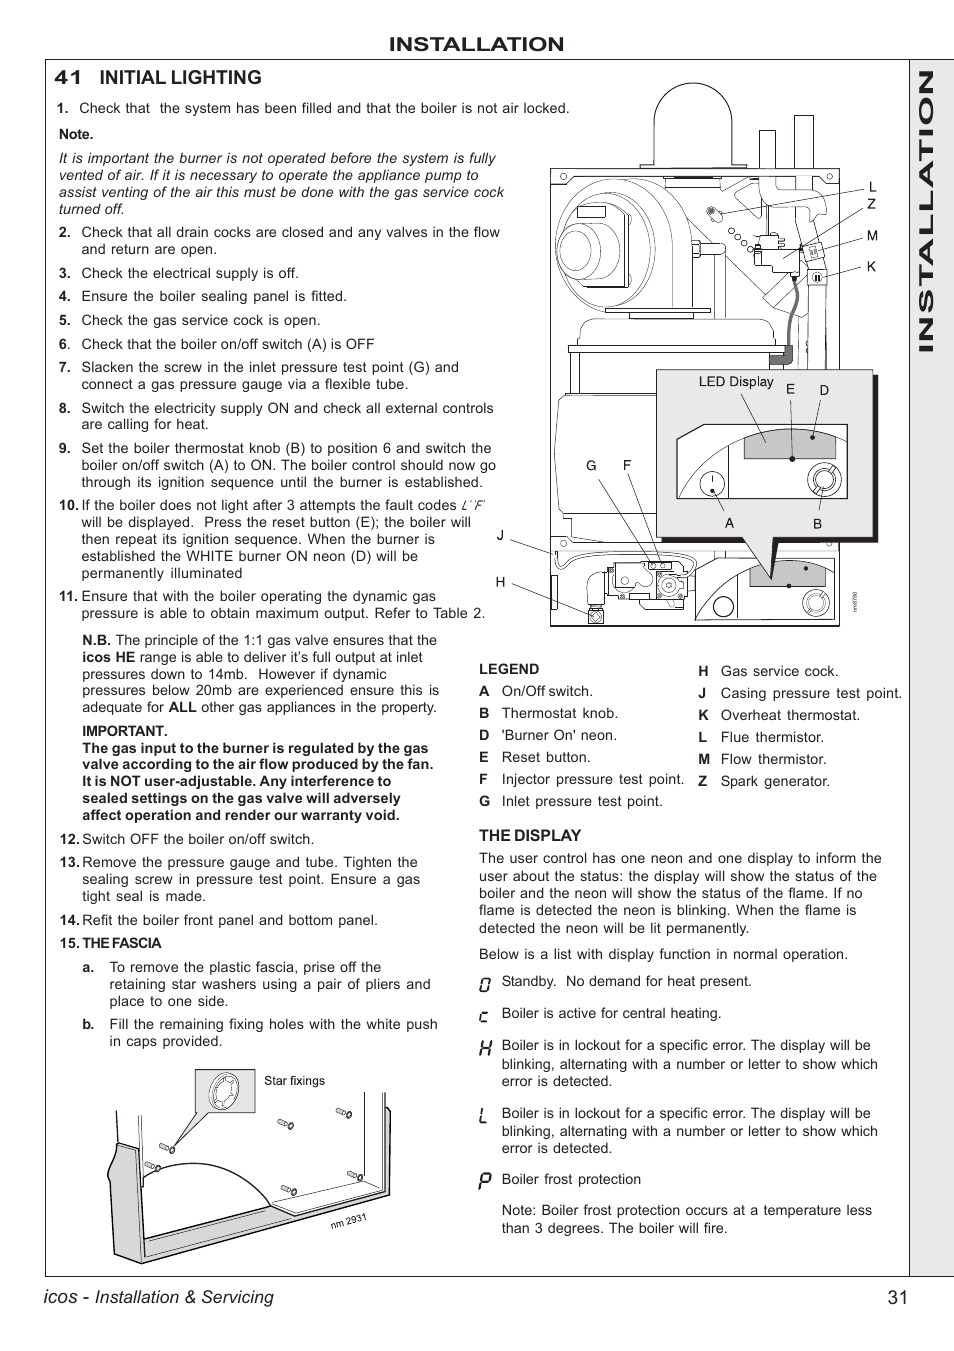 Boiler manuals: ideal icos system he15.